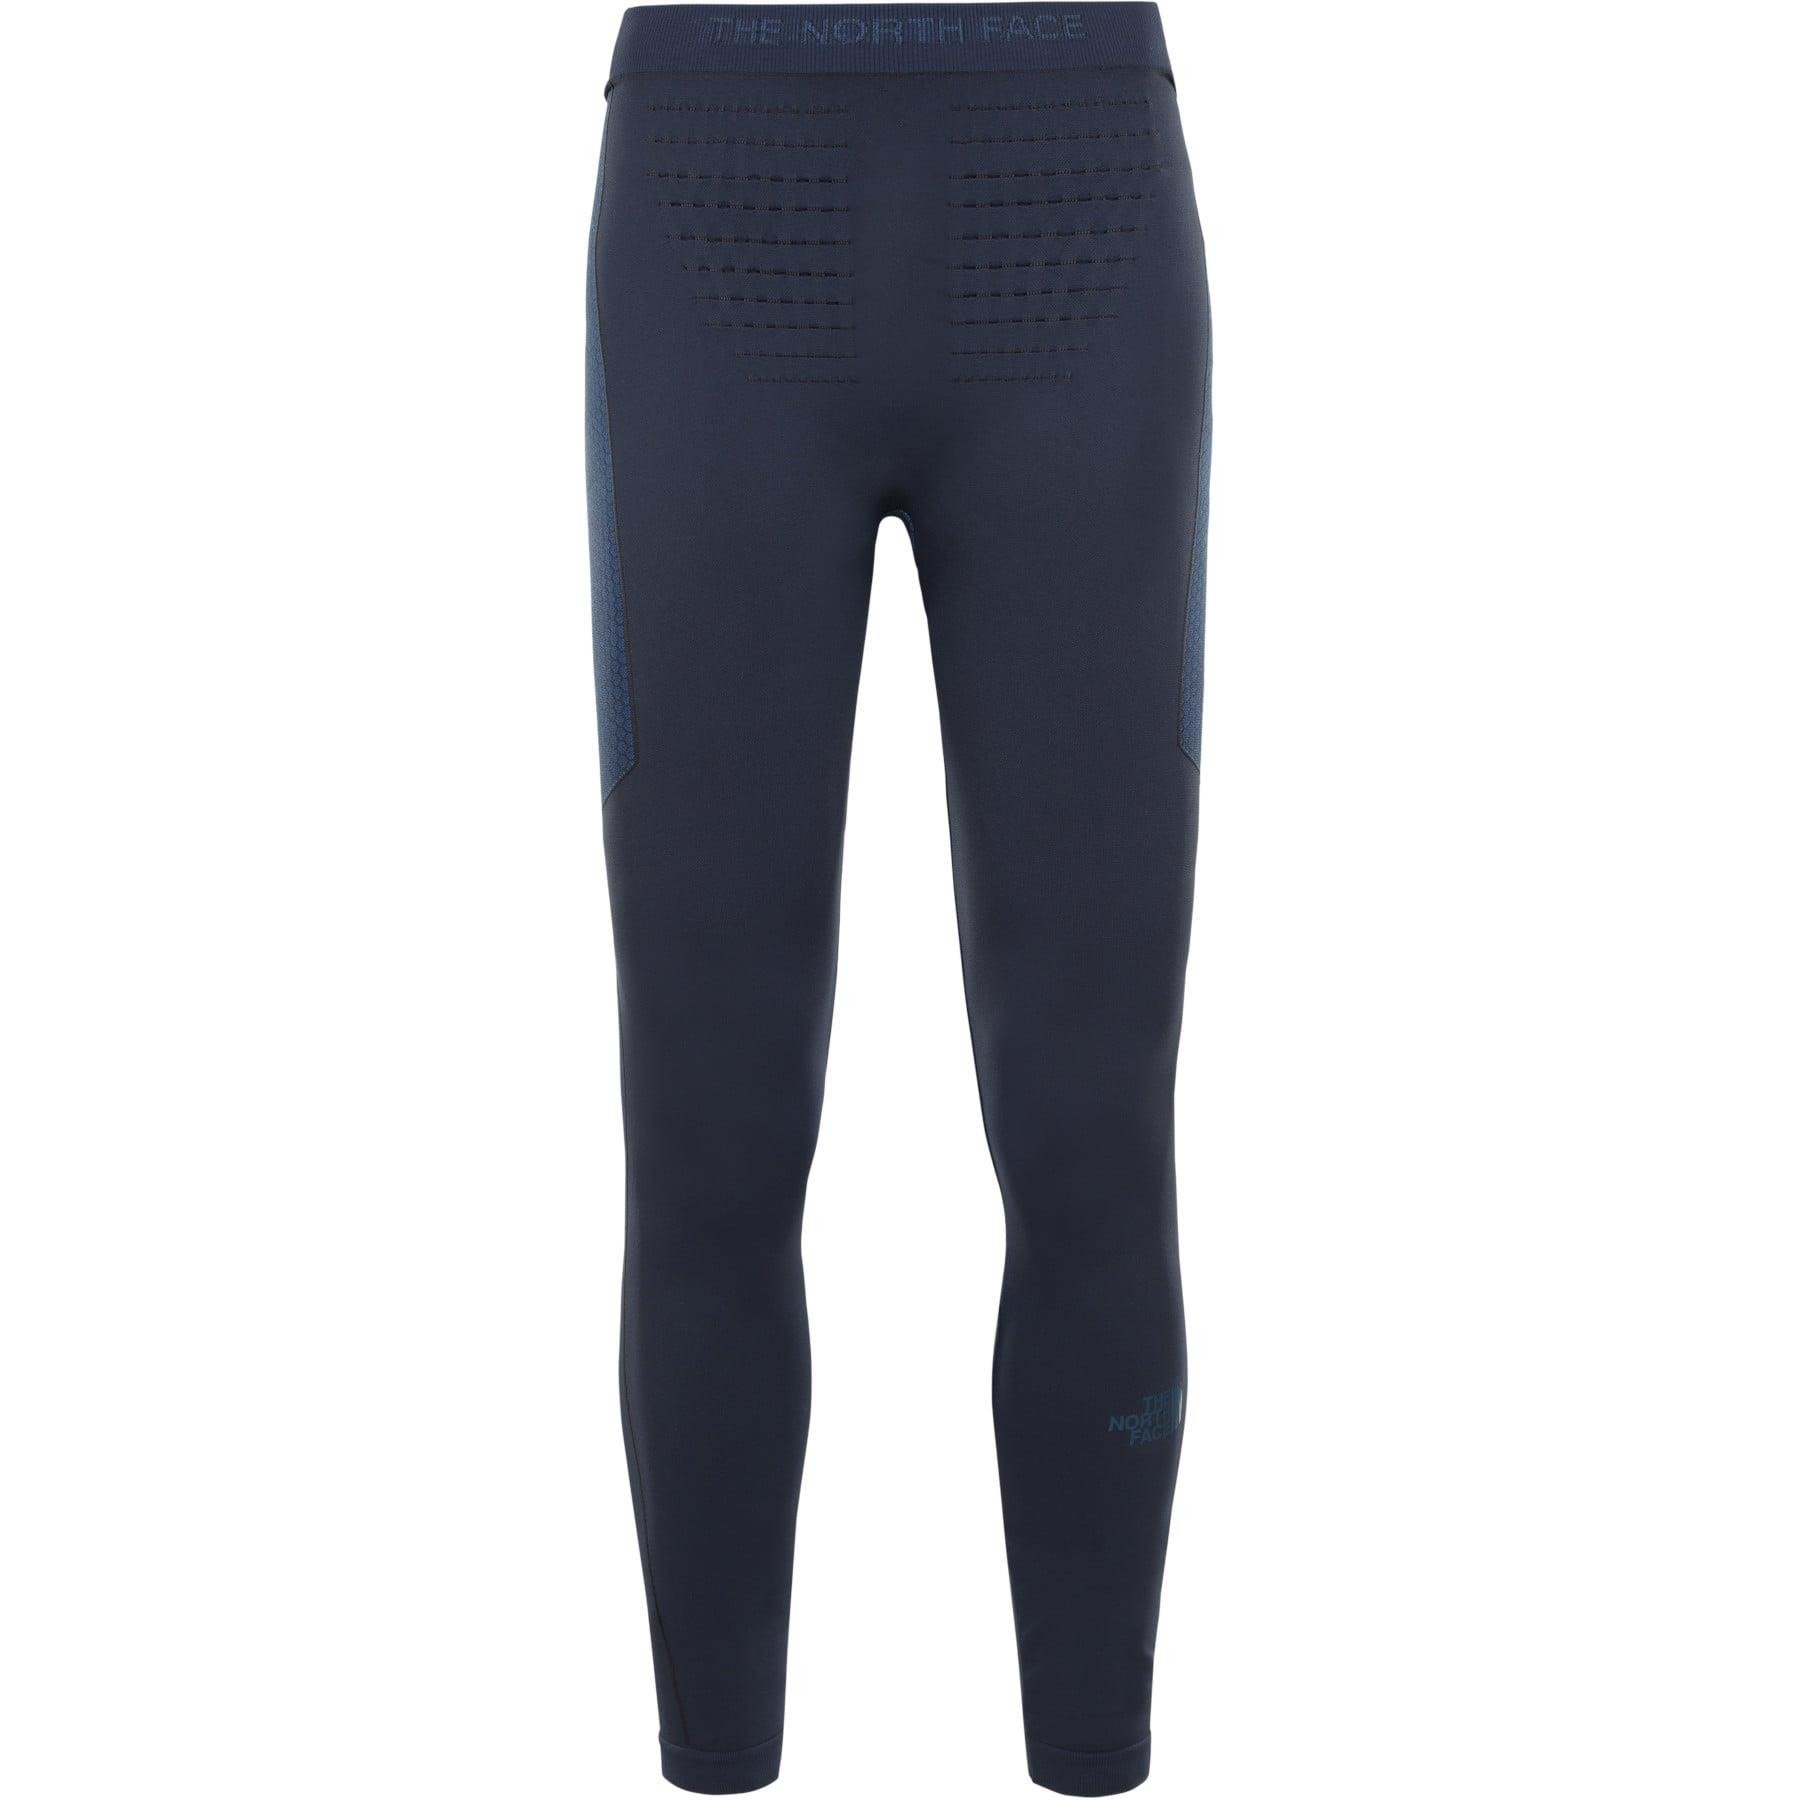 Legginsy termoaktywne The North Face Sport T93Y29HS5